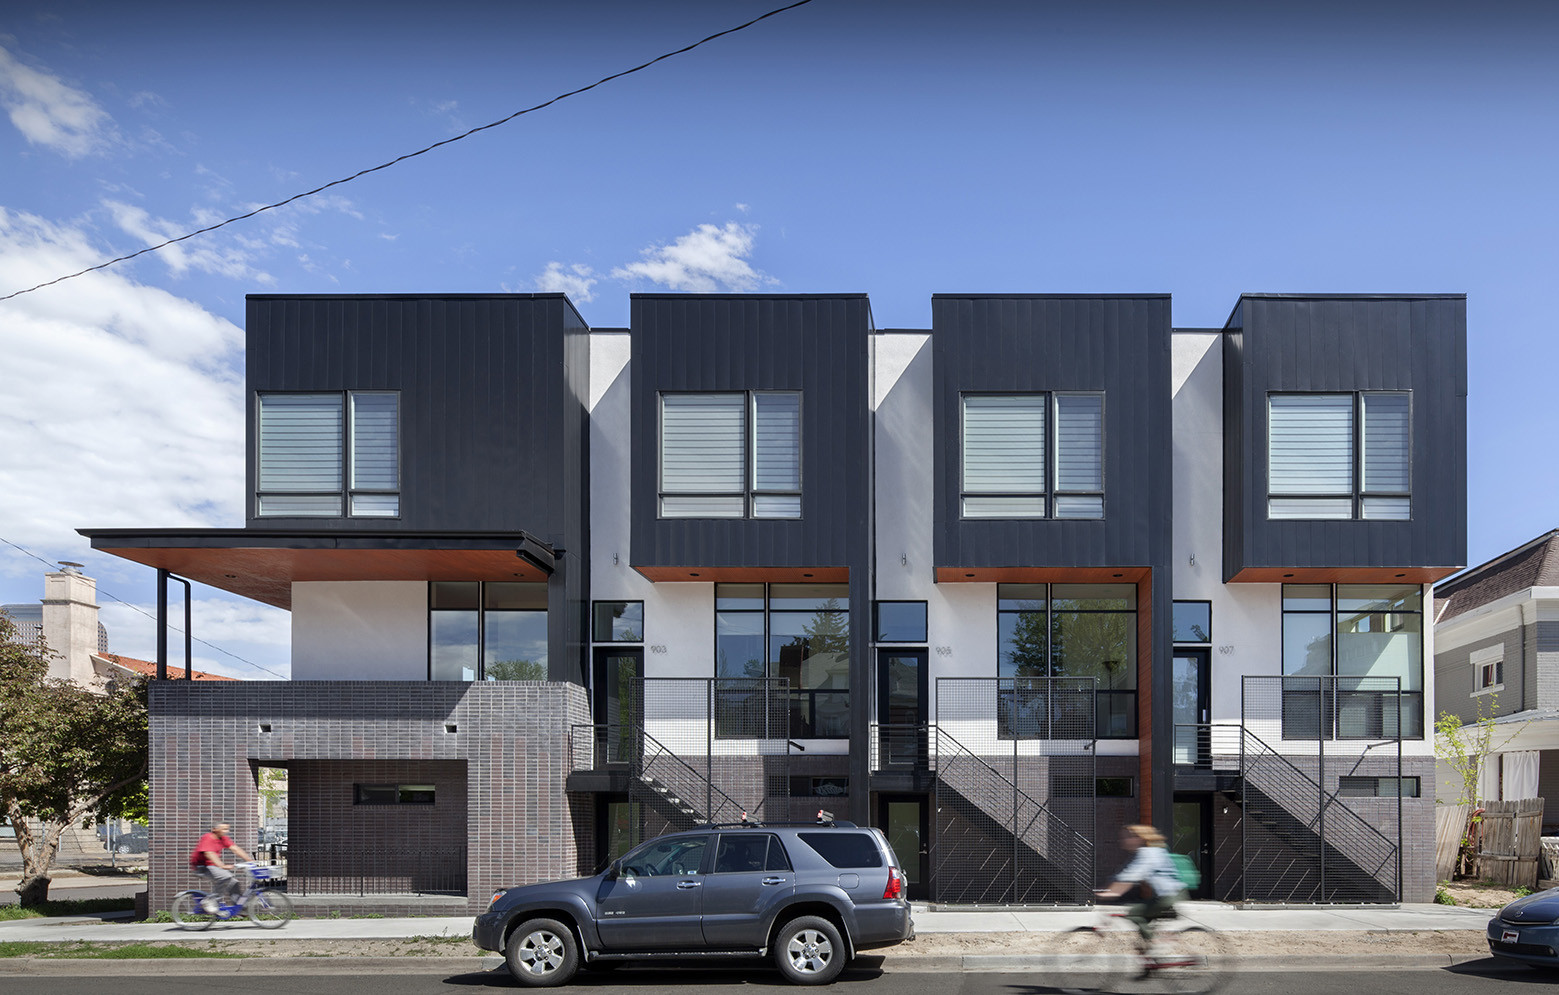 Emerson rowhouse meridian 105 architecture archdaily for Architecture 00